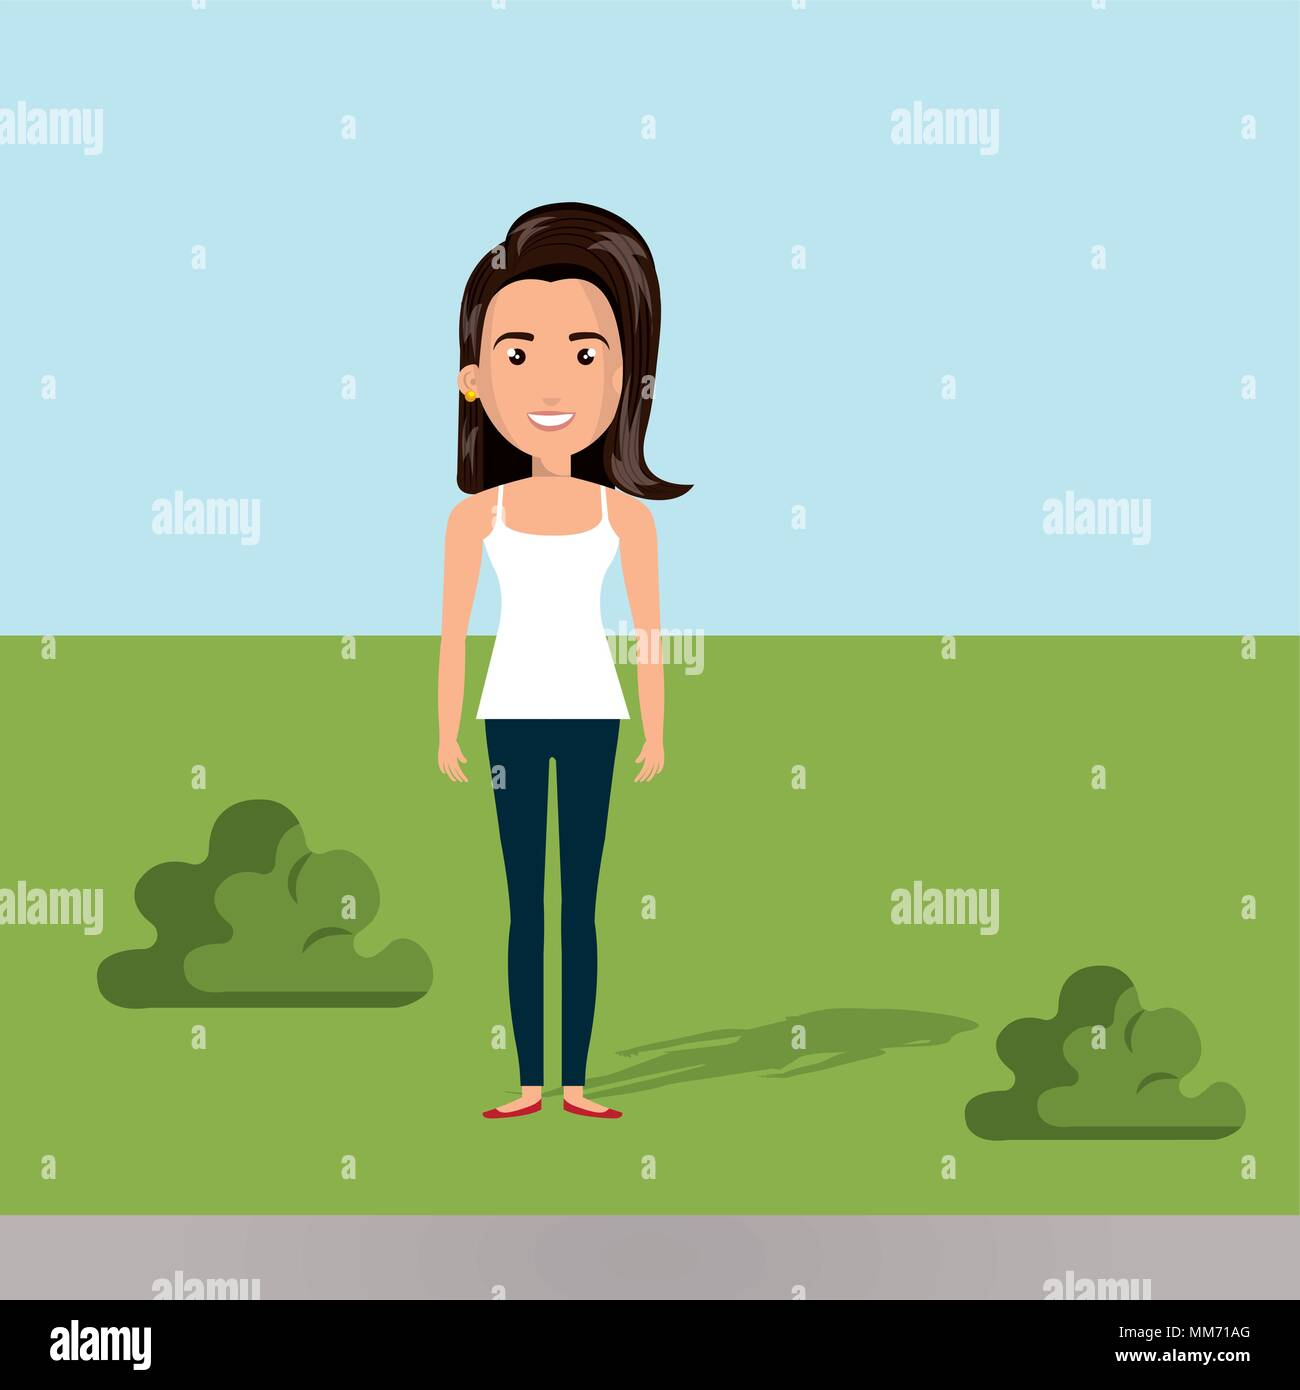 young woman in the camp character scene - Stock Vector